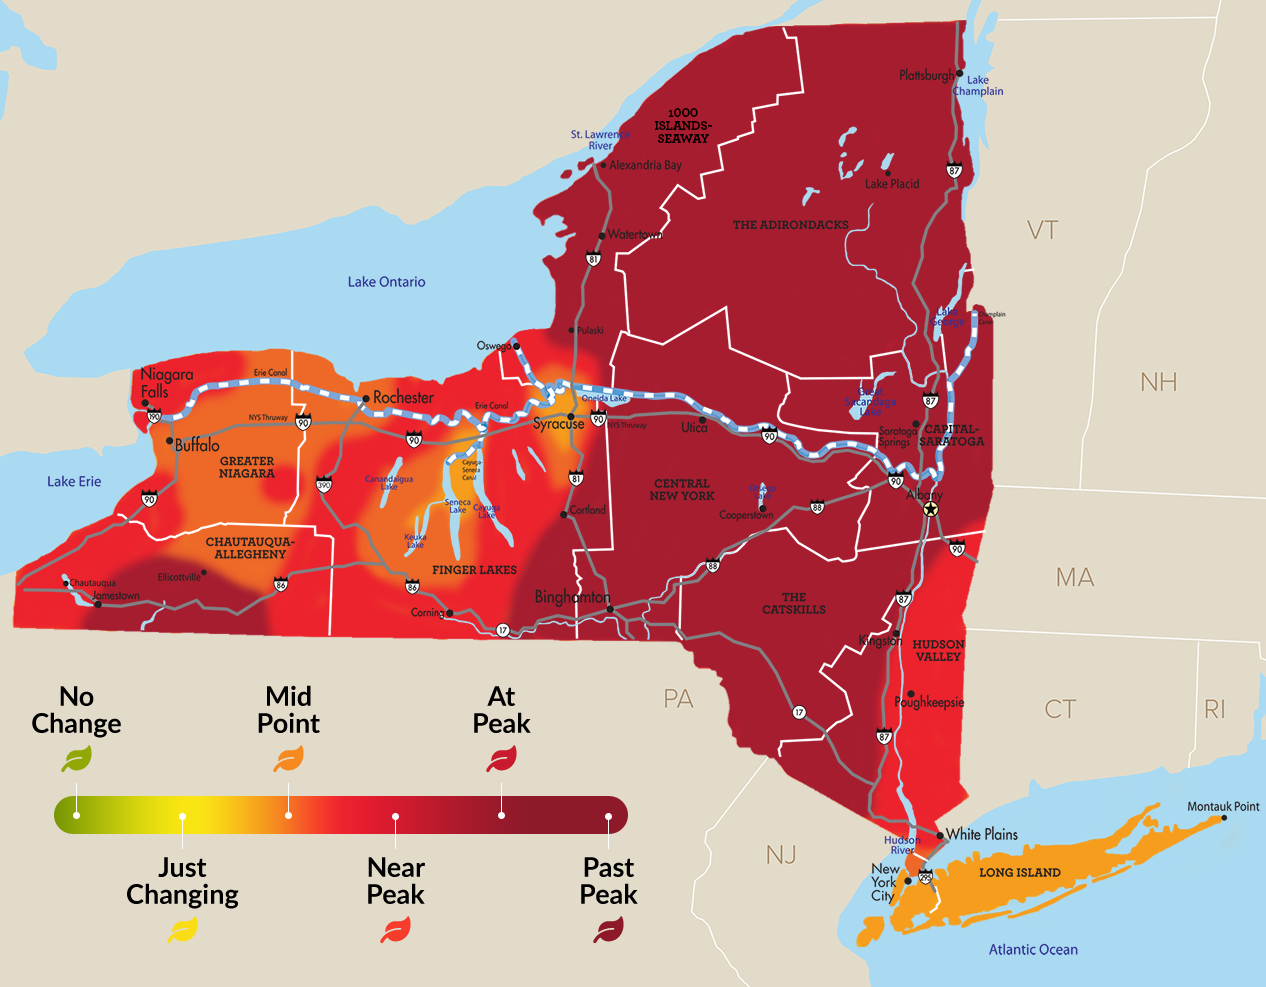 Fall foliage map 2019: Where to see the brilliant colors of ...